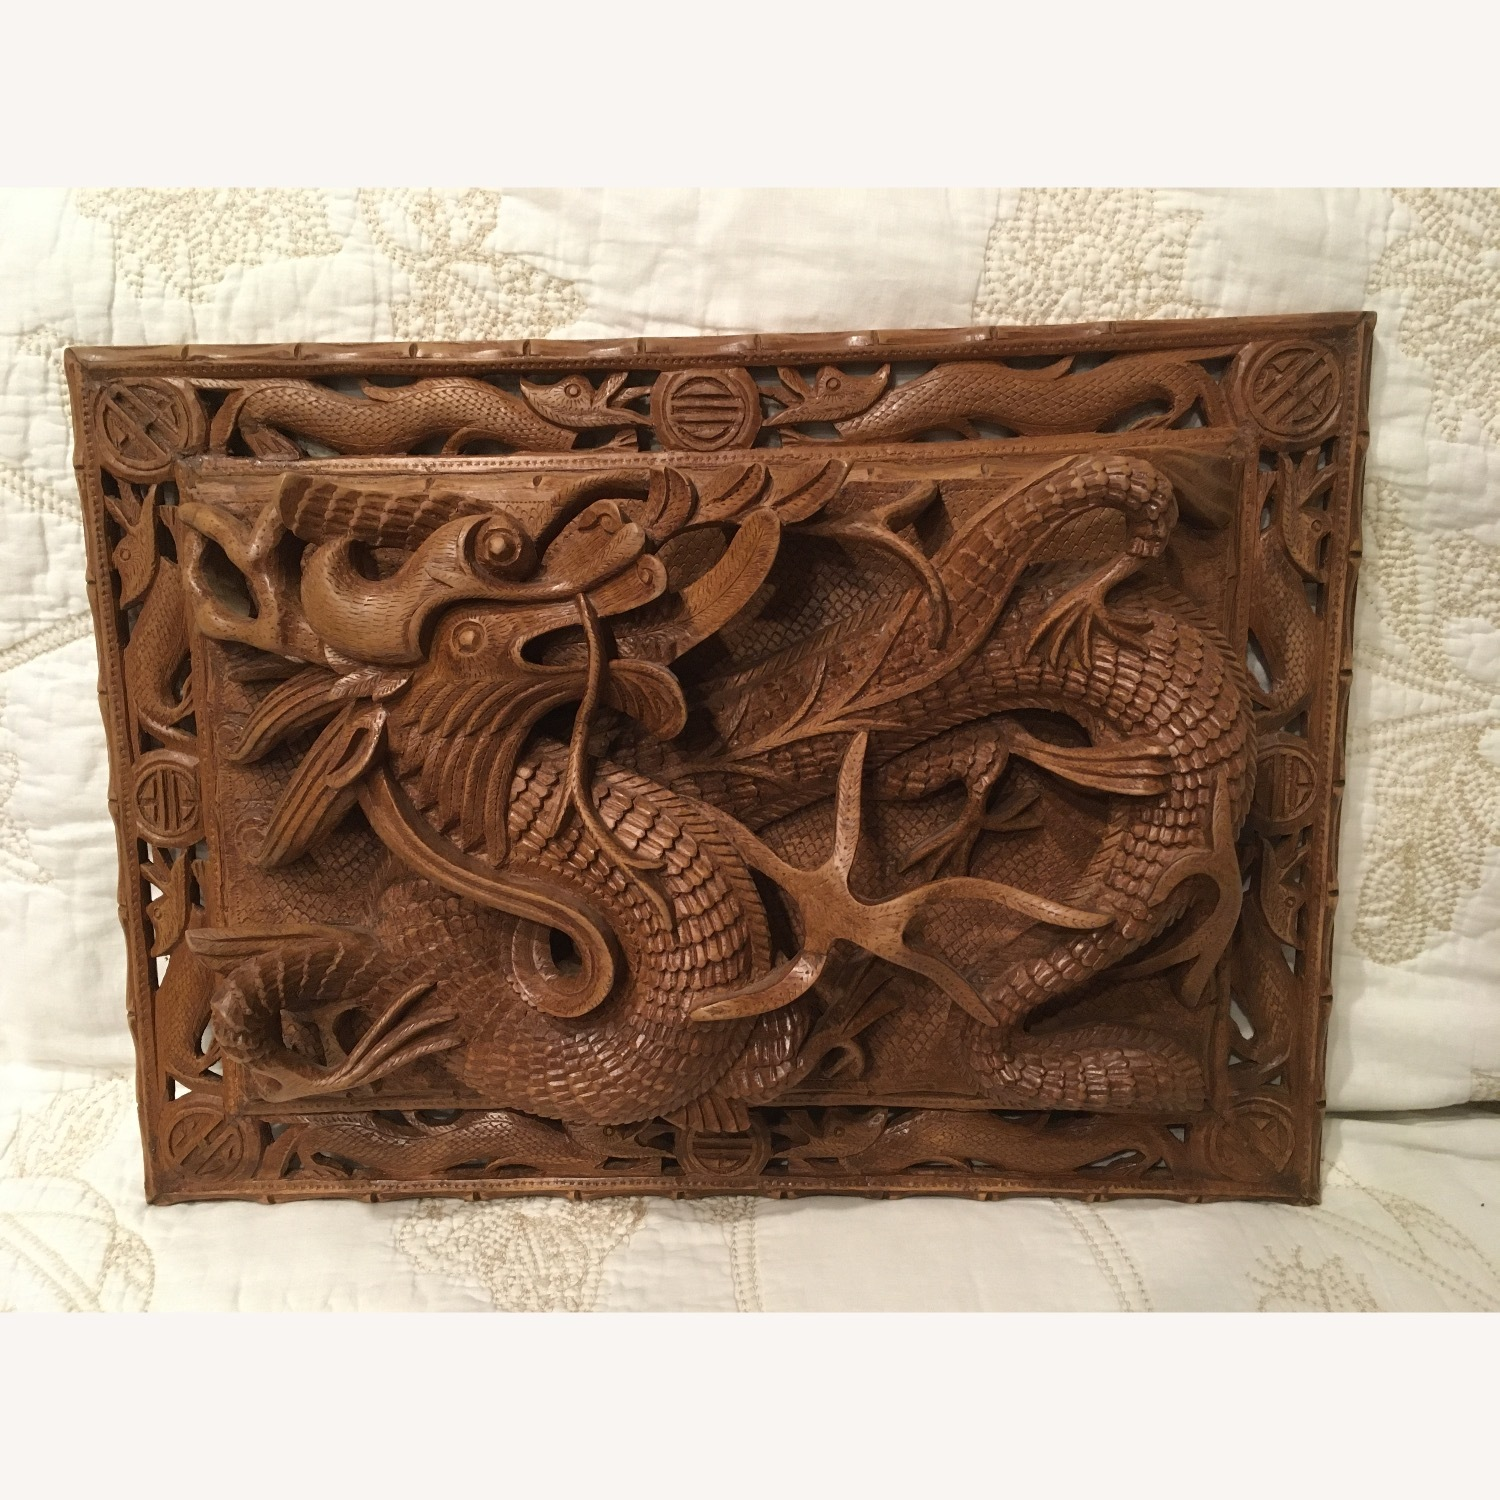 Original Woodcraft Panels with Dragons from India - image-4